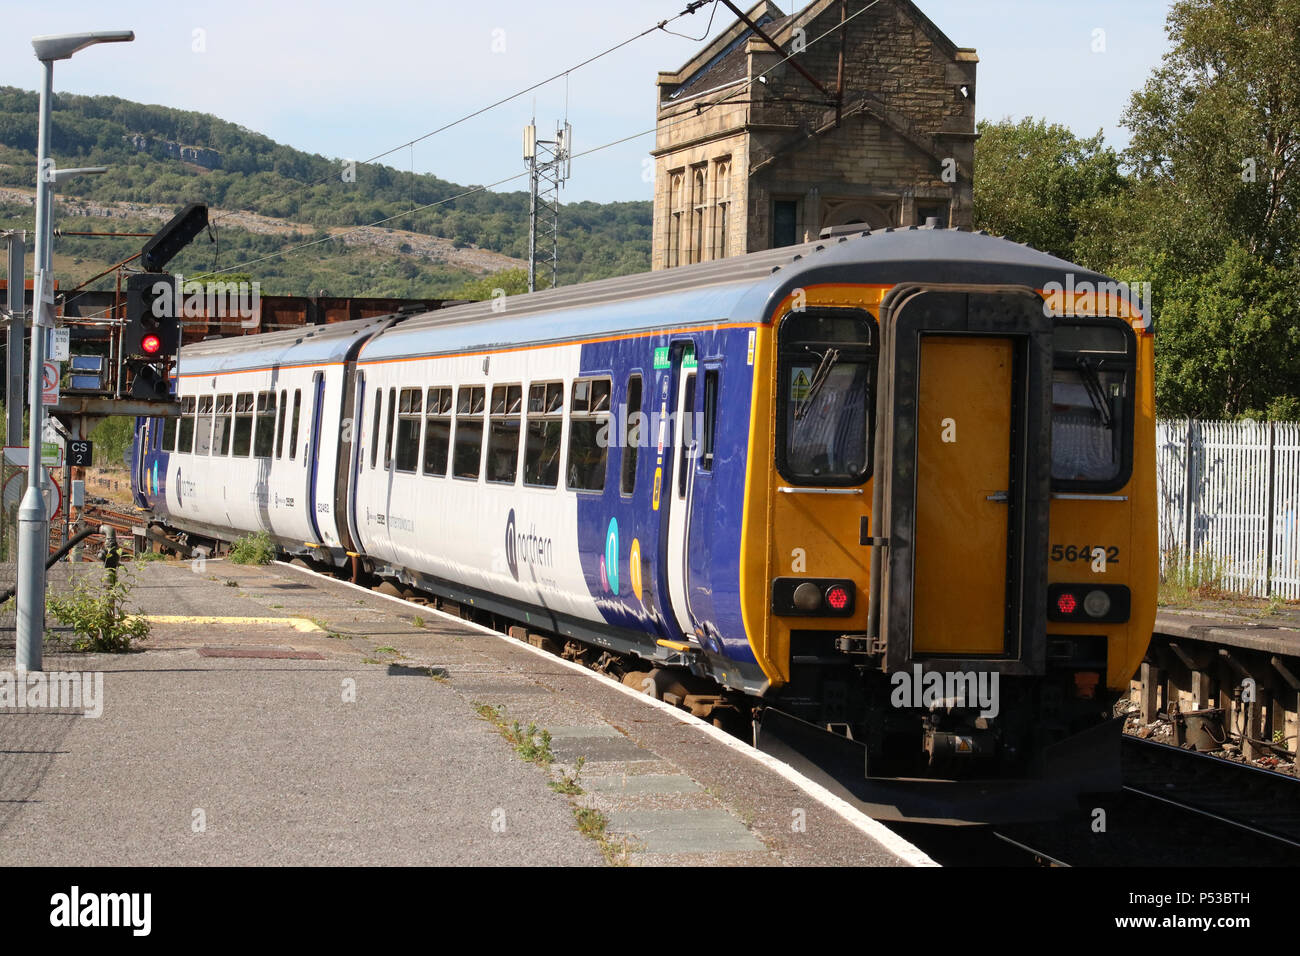 Class 156 super sprinter dmu in Northern livery leaving Carnforth railway station with service to Carlisle via Barrow-in-Furness and Cumbrian Coast. - Stock Image